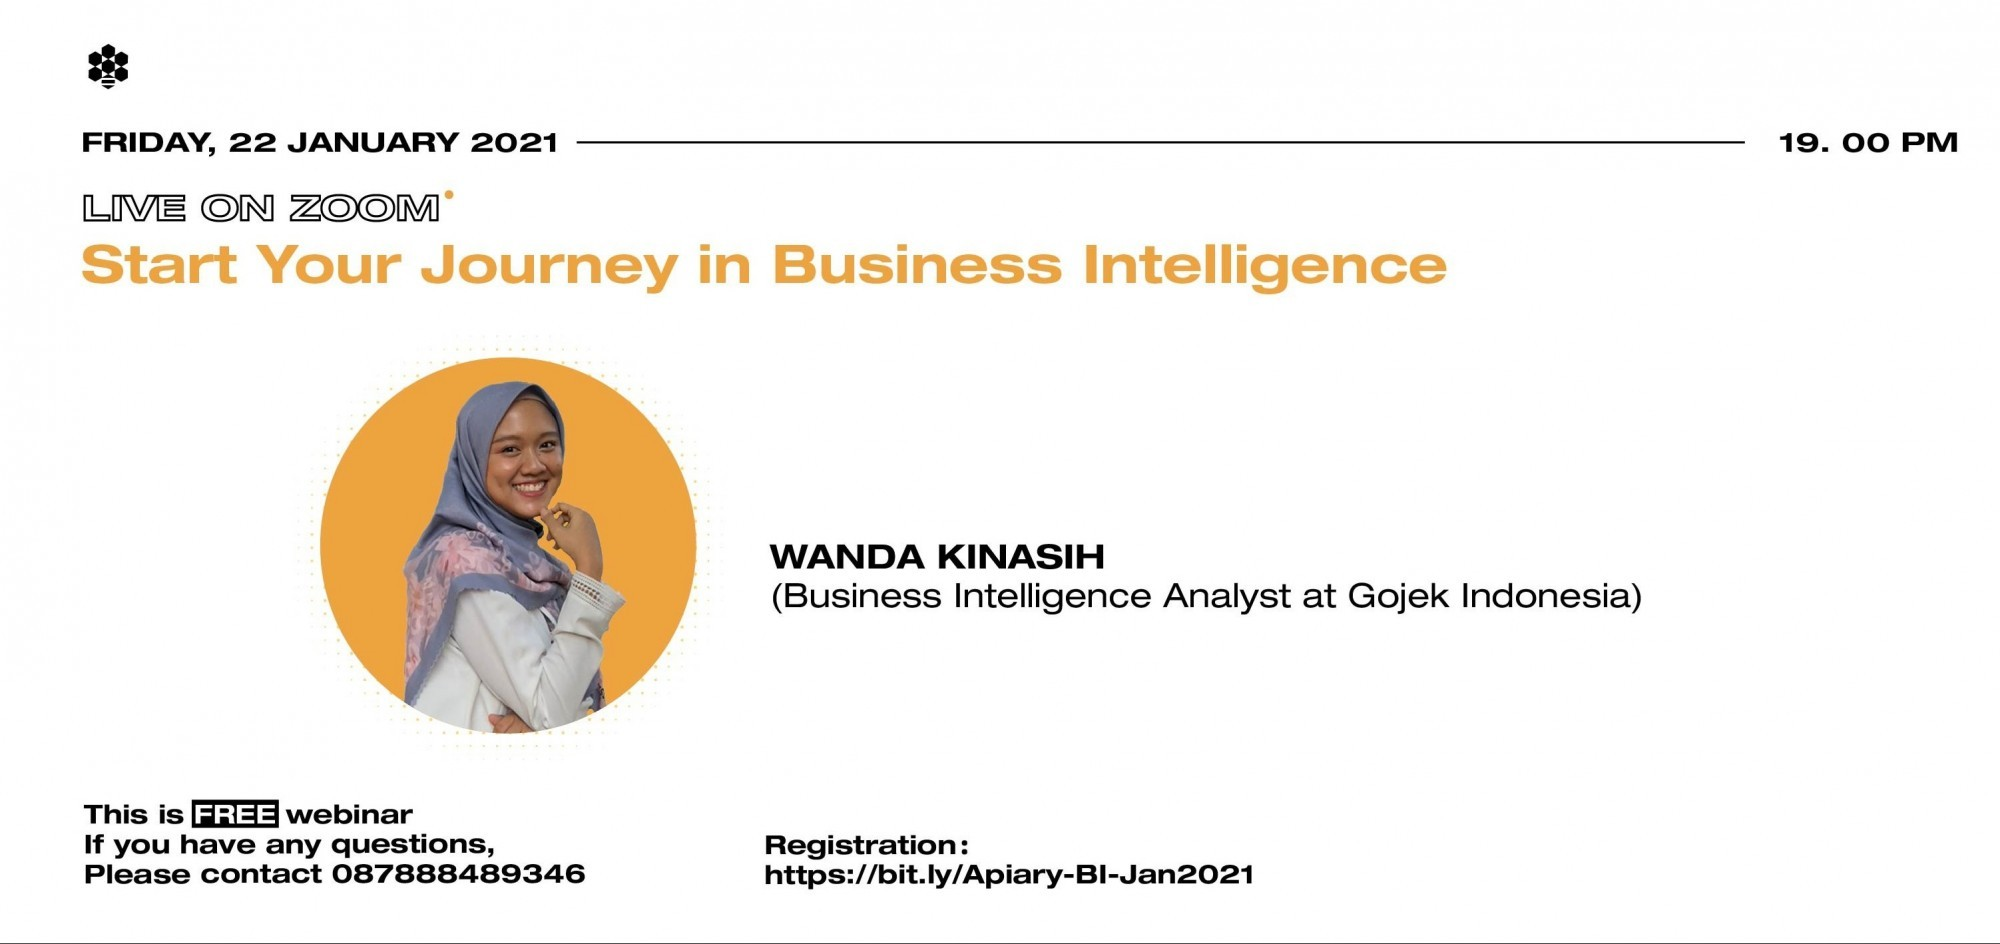 Start Your Journey in Business Intelligence